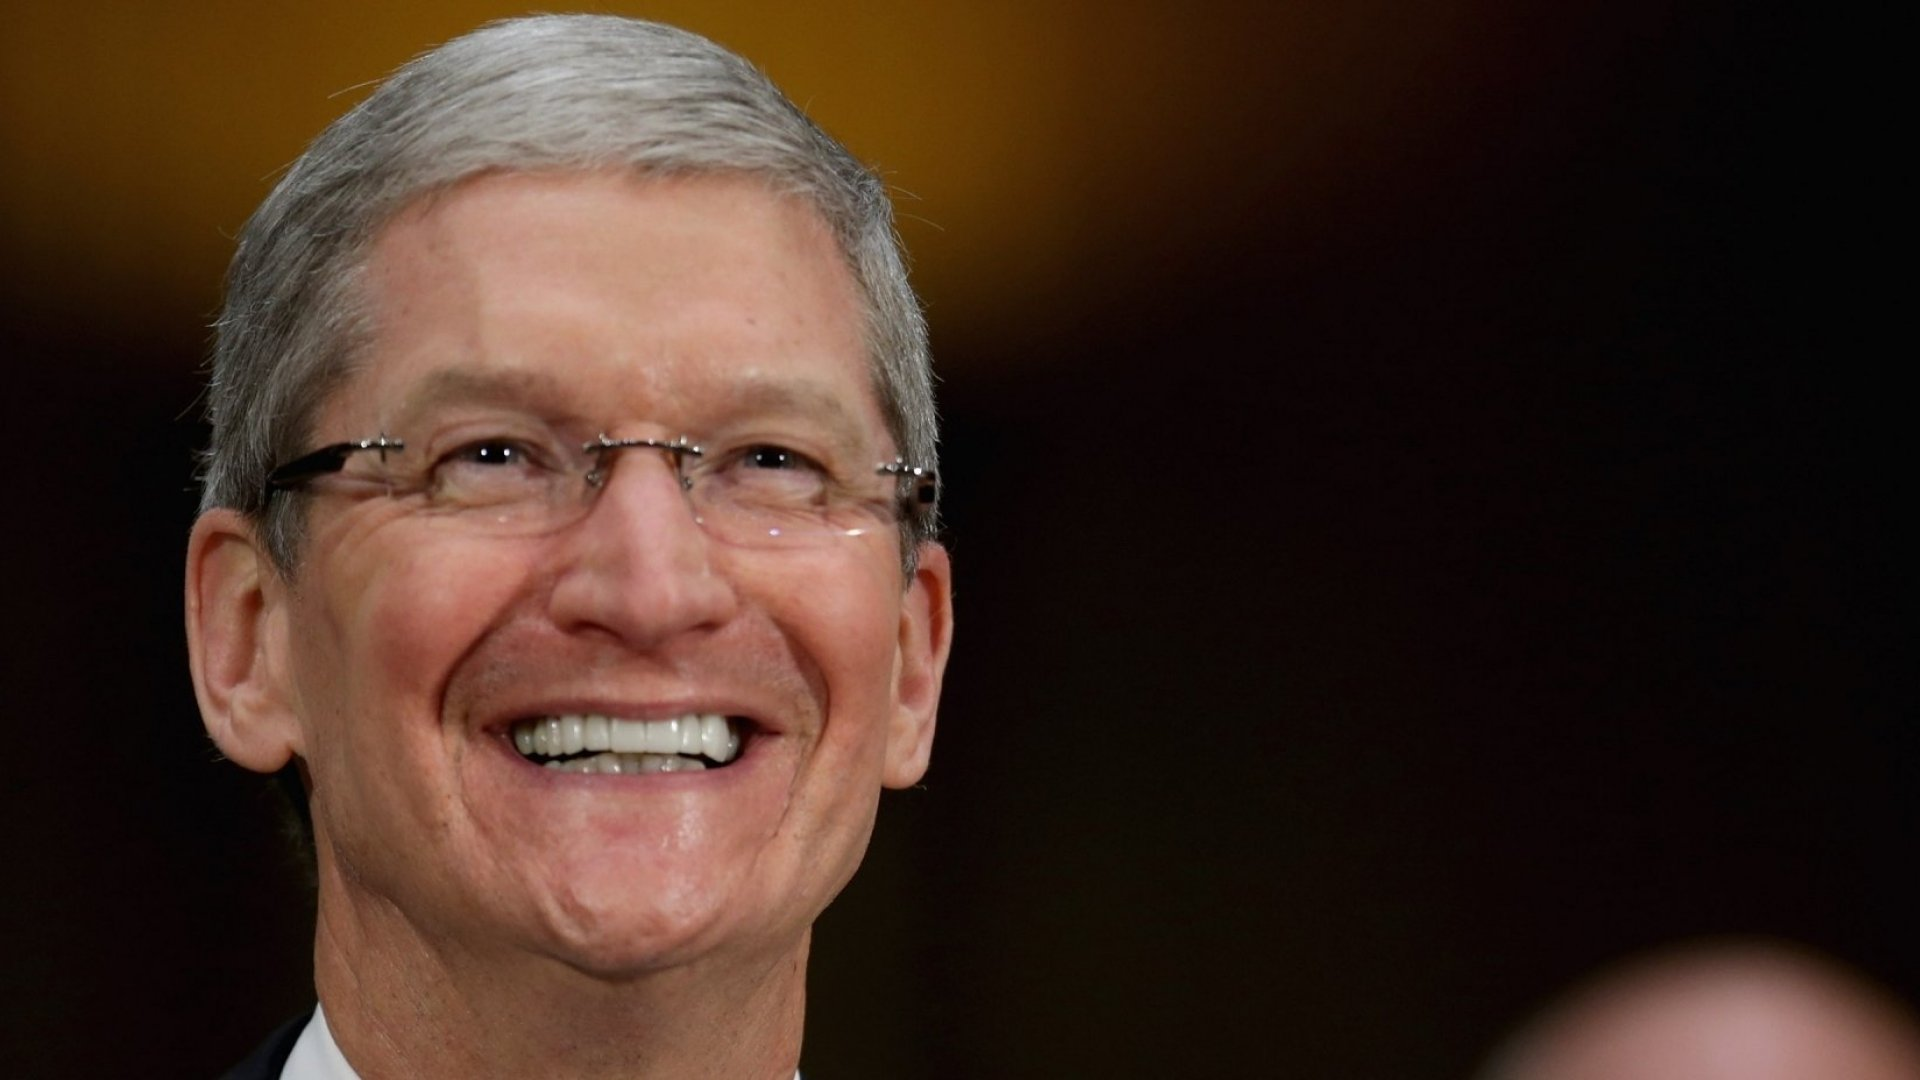 Apple CEO Tim Cook: Businesses Can't 'Stand on the Sideline' on Climate Change Issues